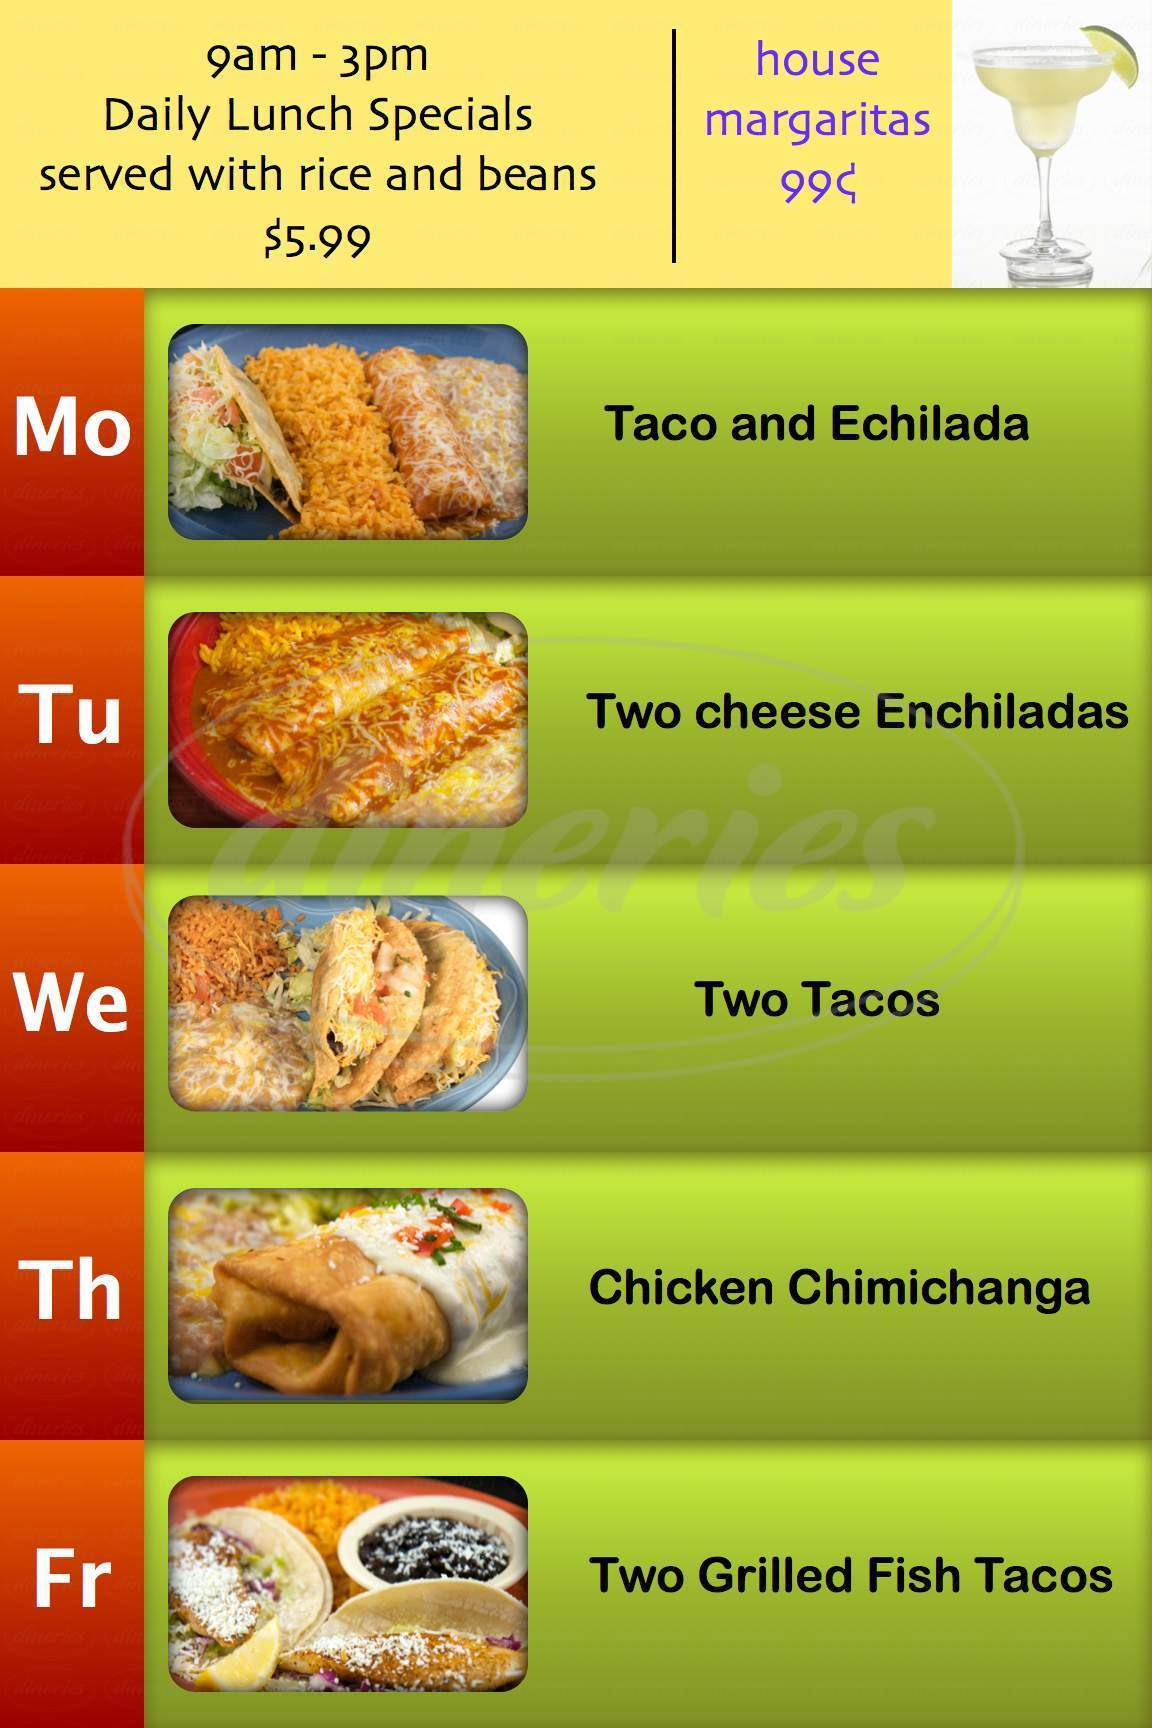 menu for Las Glorias Grill